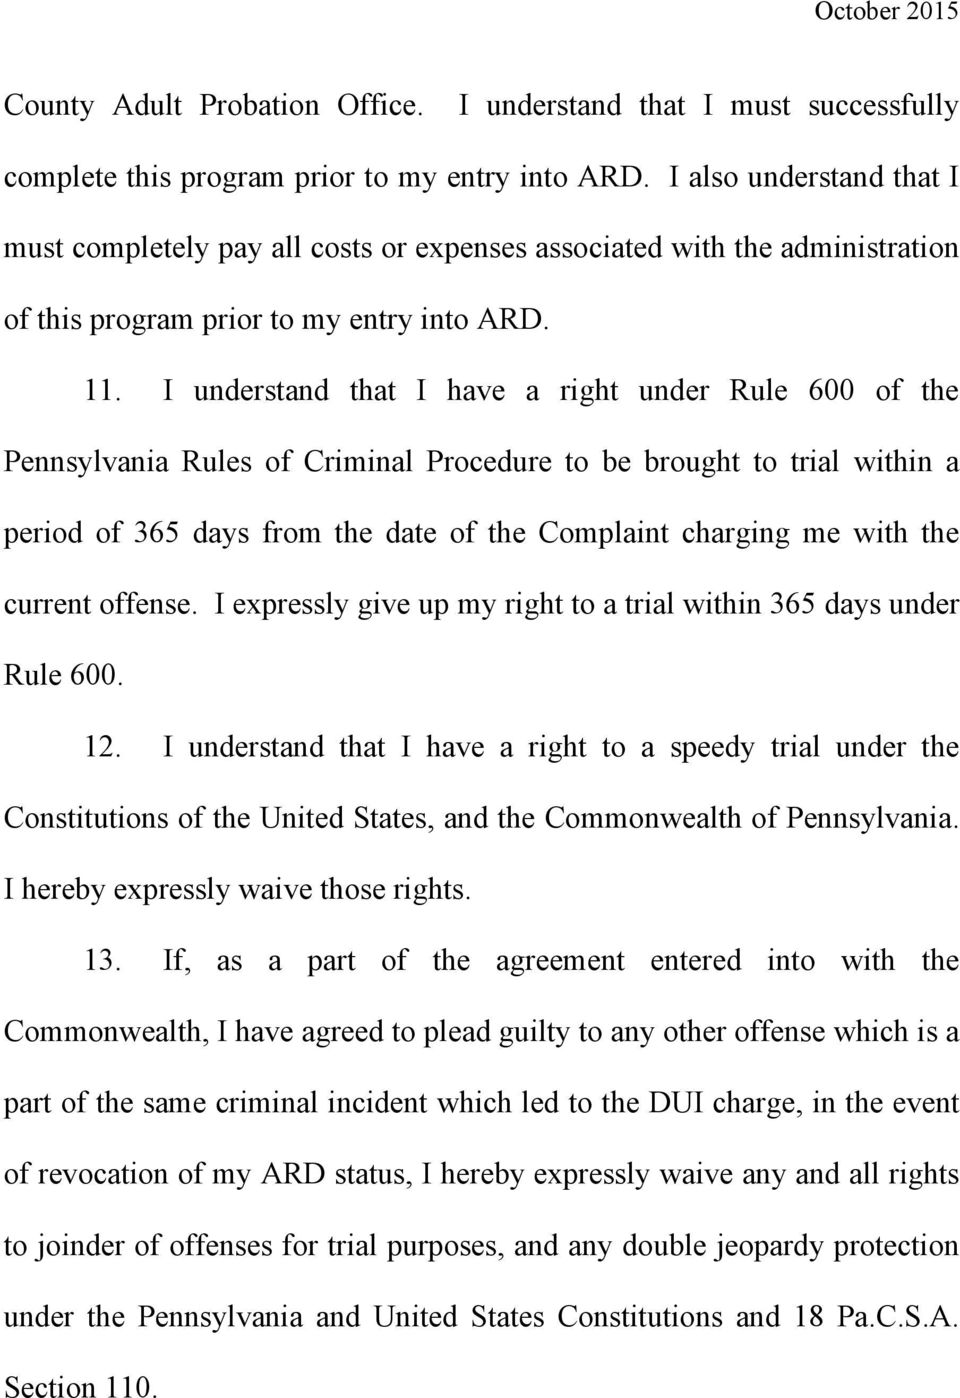 I understand that I have a right under Rule 600 of the Pennsylvania Rules of Criminal Procedure to be brought to trial within a period of 365 days from the date of the Complaint charging me with the